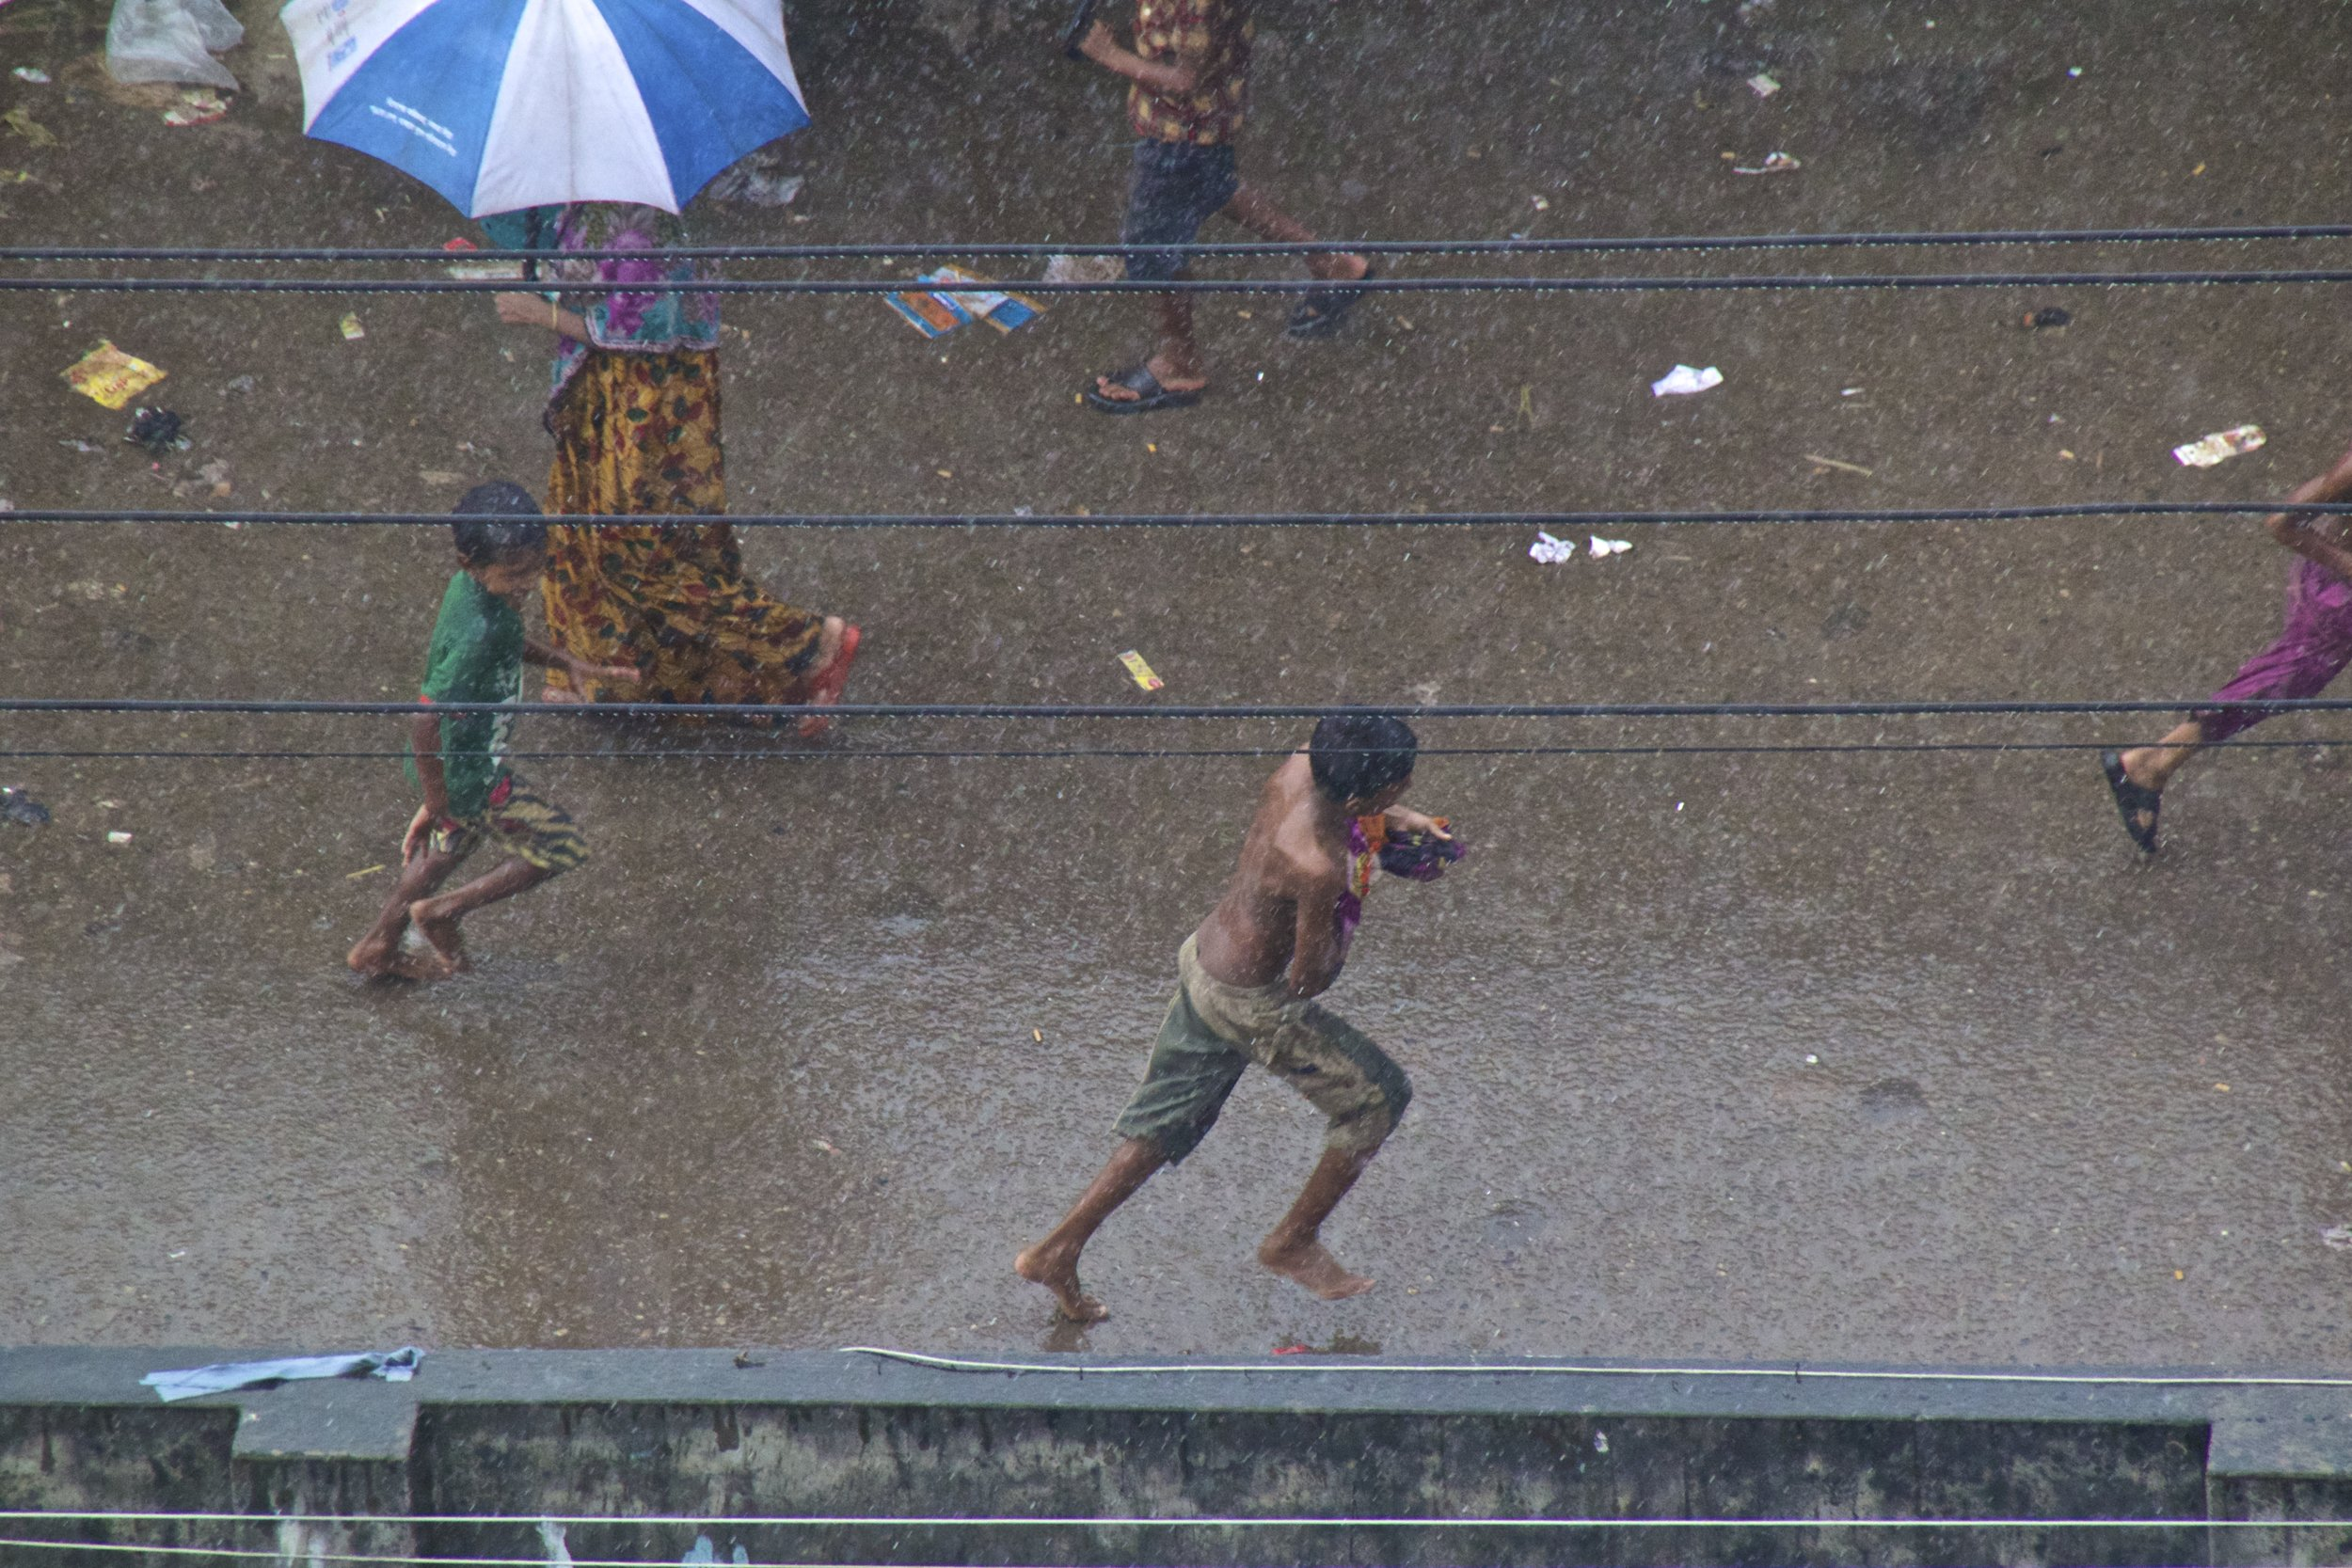 dhaka bangladesh slums monsoon rain 3.jpg